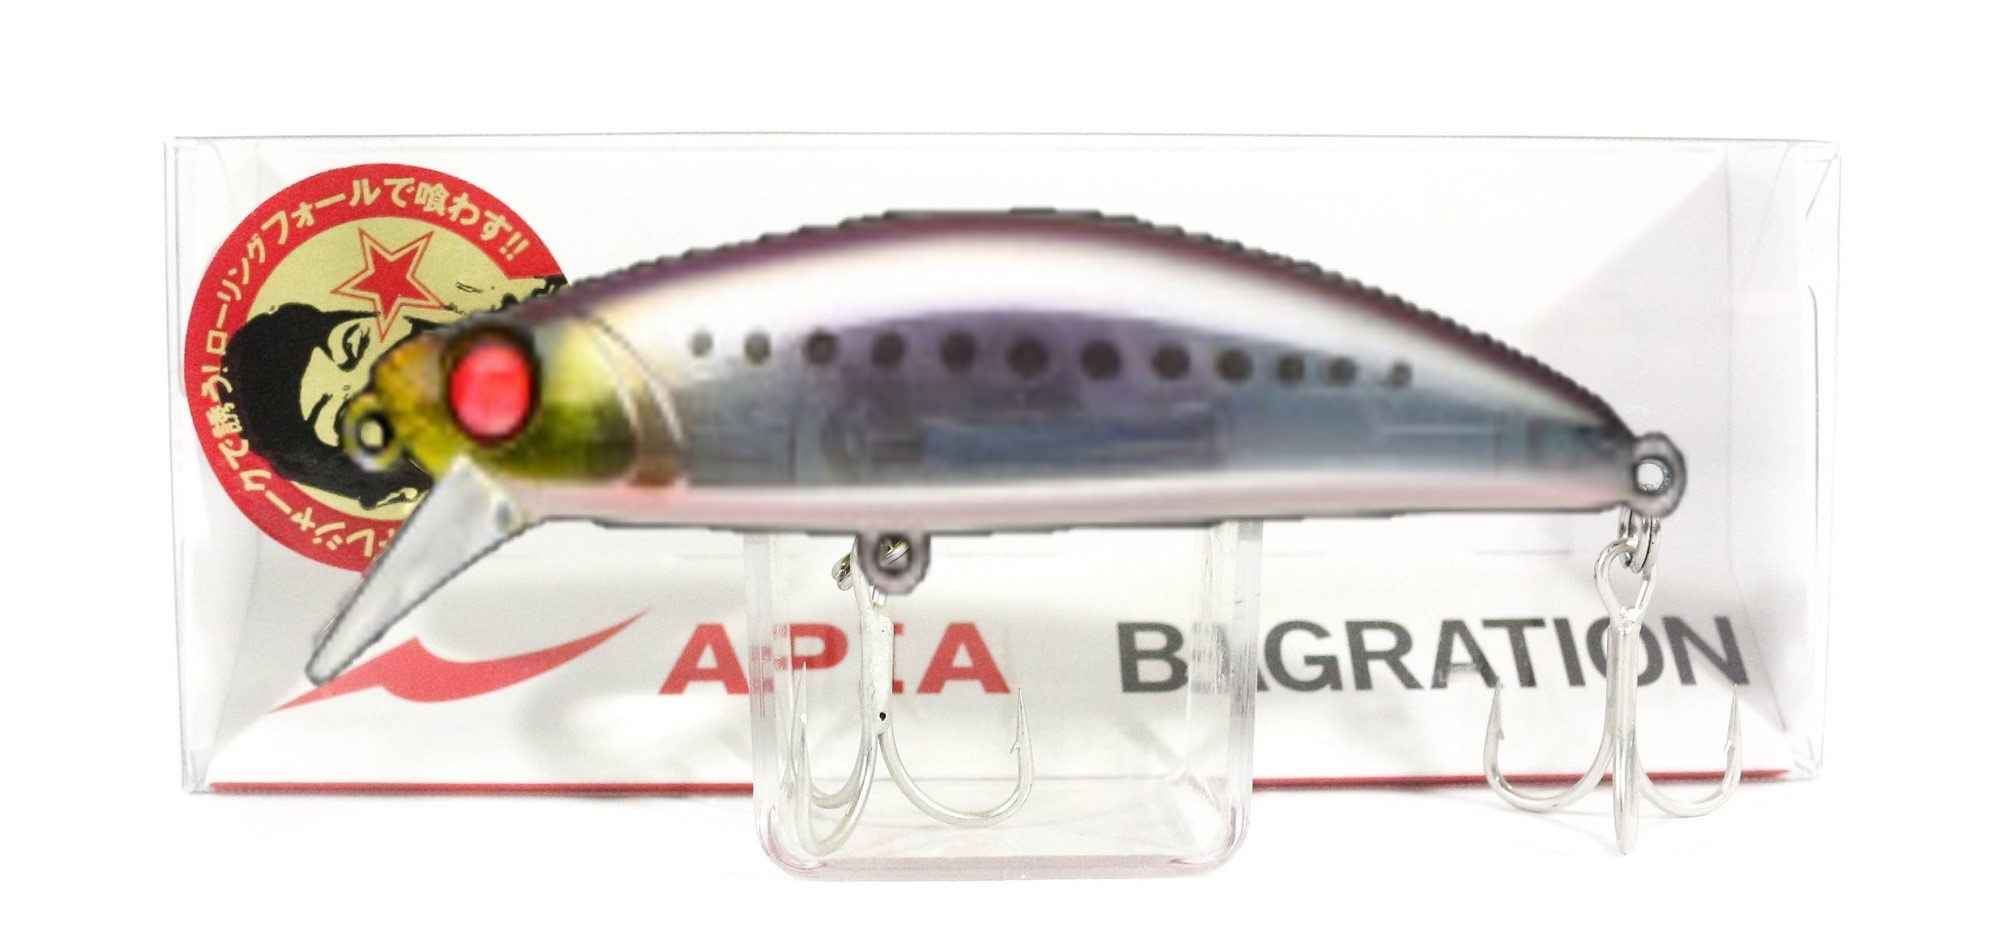 Apia Bagration 80 Sinking Lure 04 (5275)